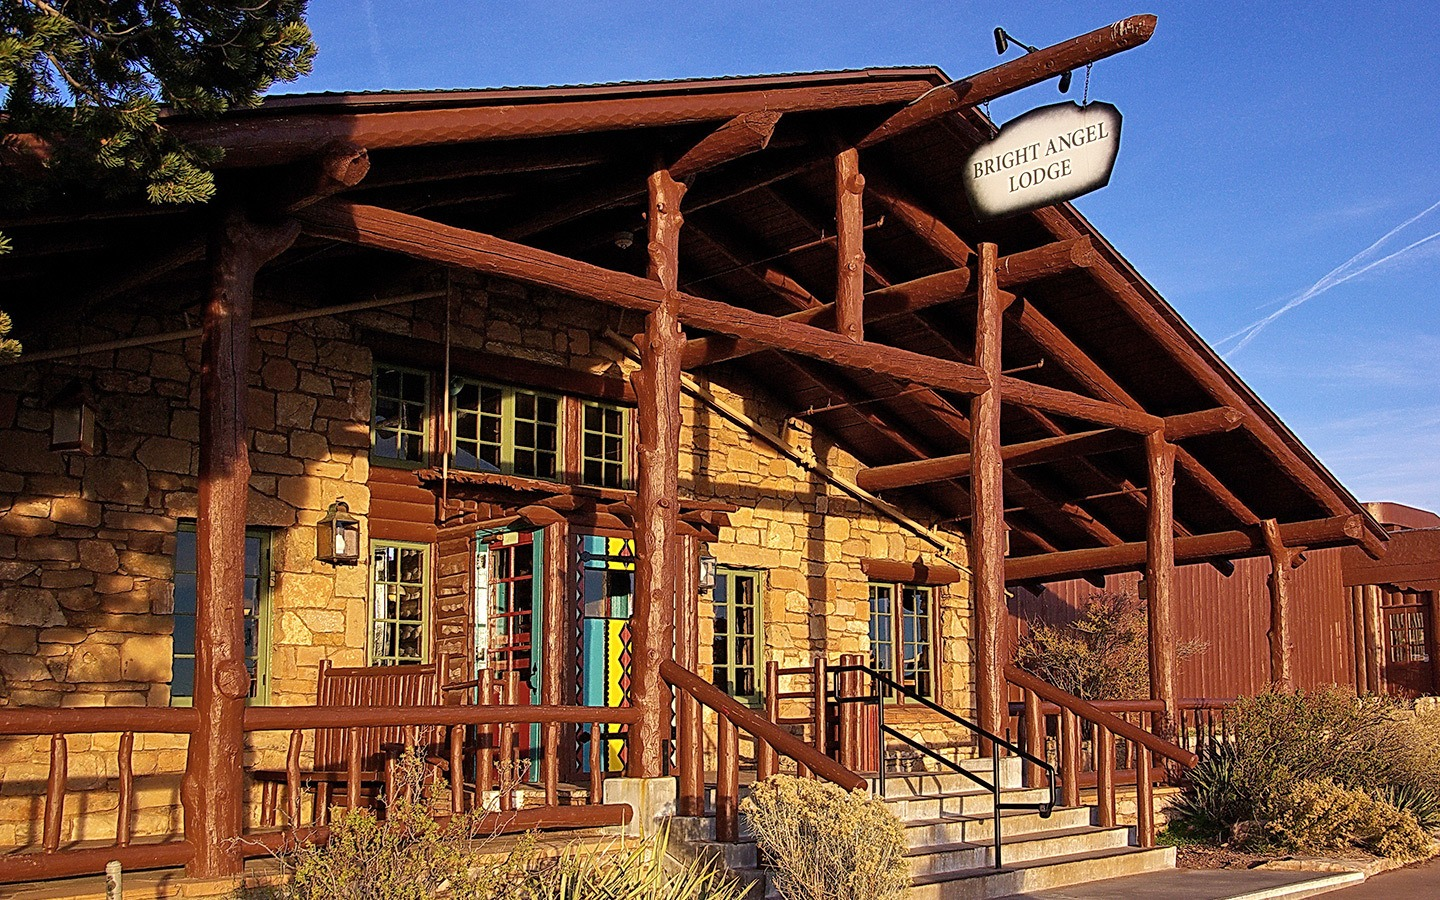 Bright Angel Lodge, Grand Canyon hotel